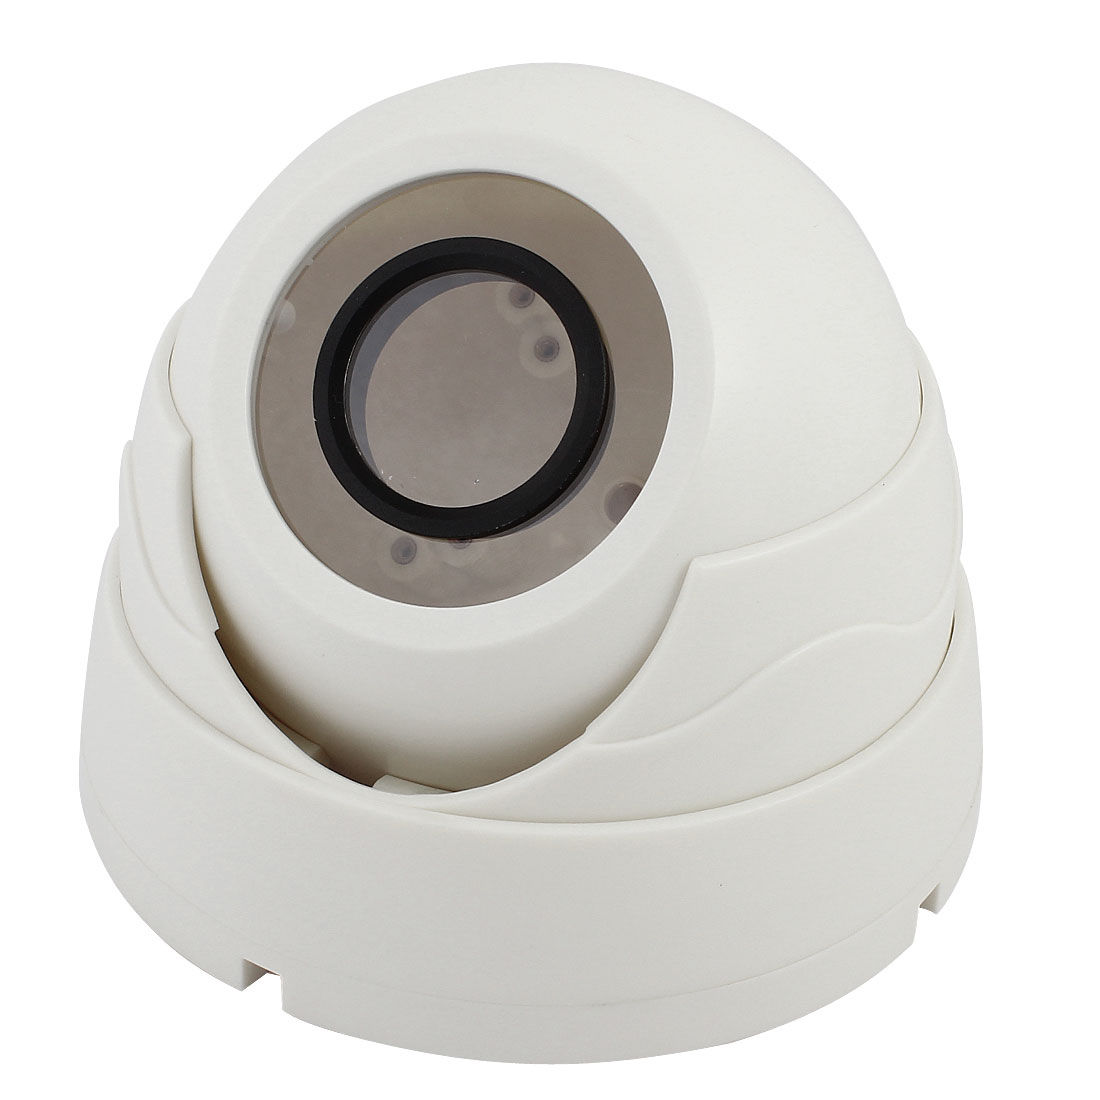 Surveillance White Plastic CCTV Dome Camera Housing Case 12cm Dia